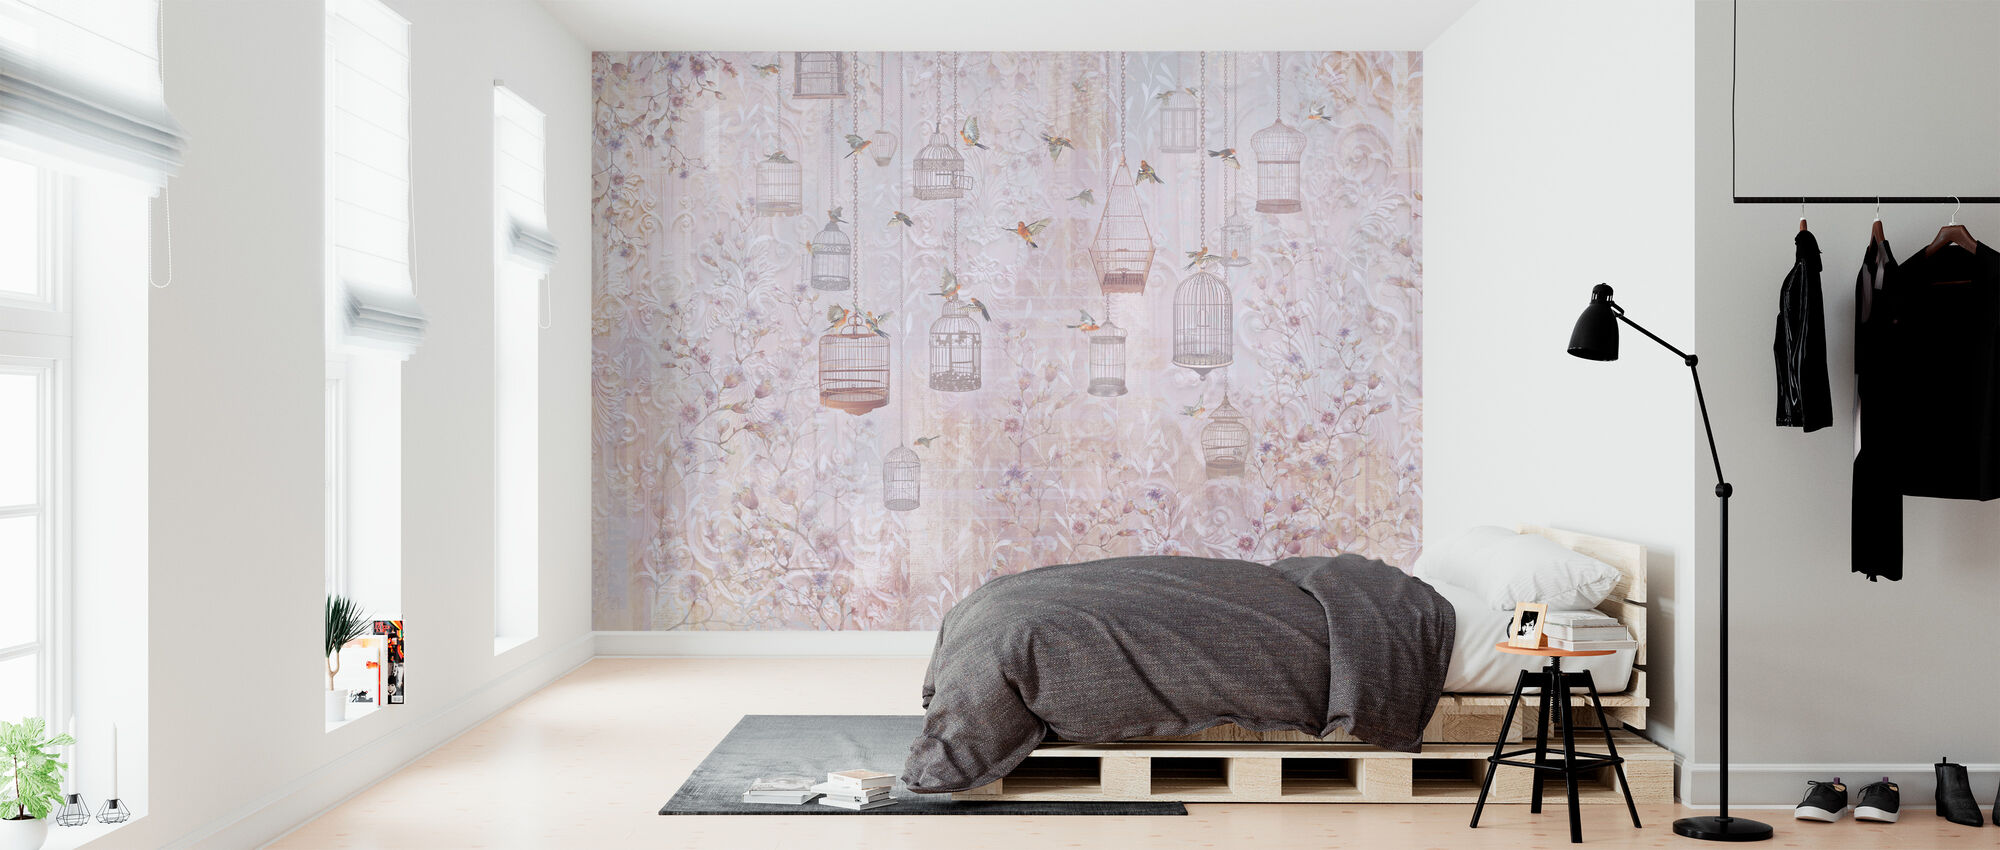 Birds and Cages - Wallpaper - Bedroom